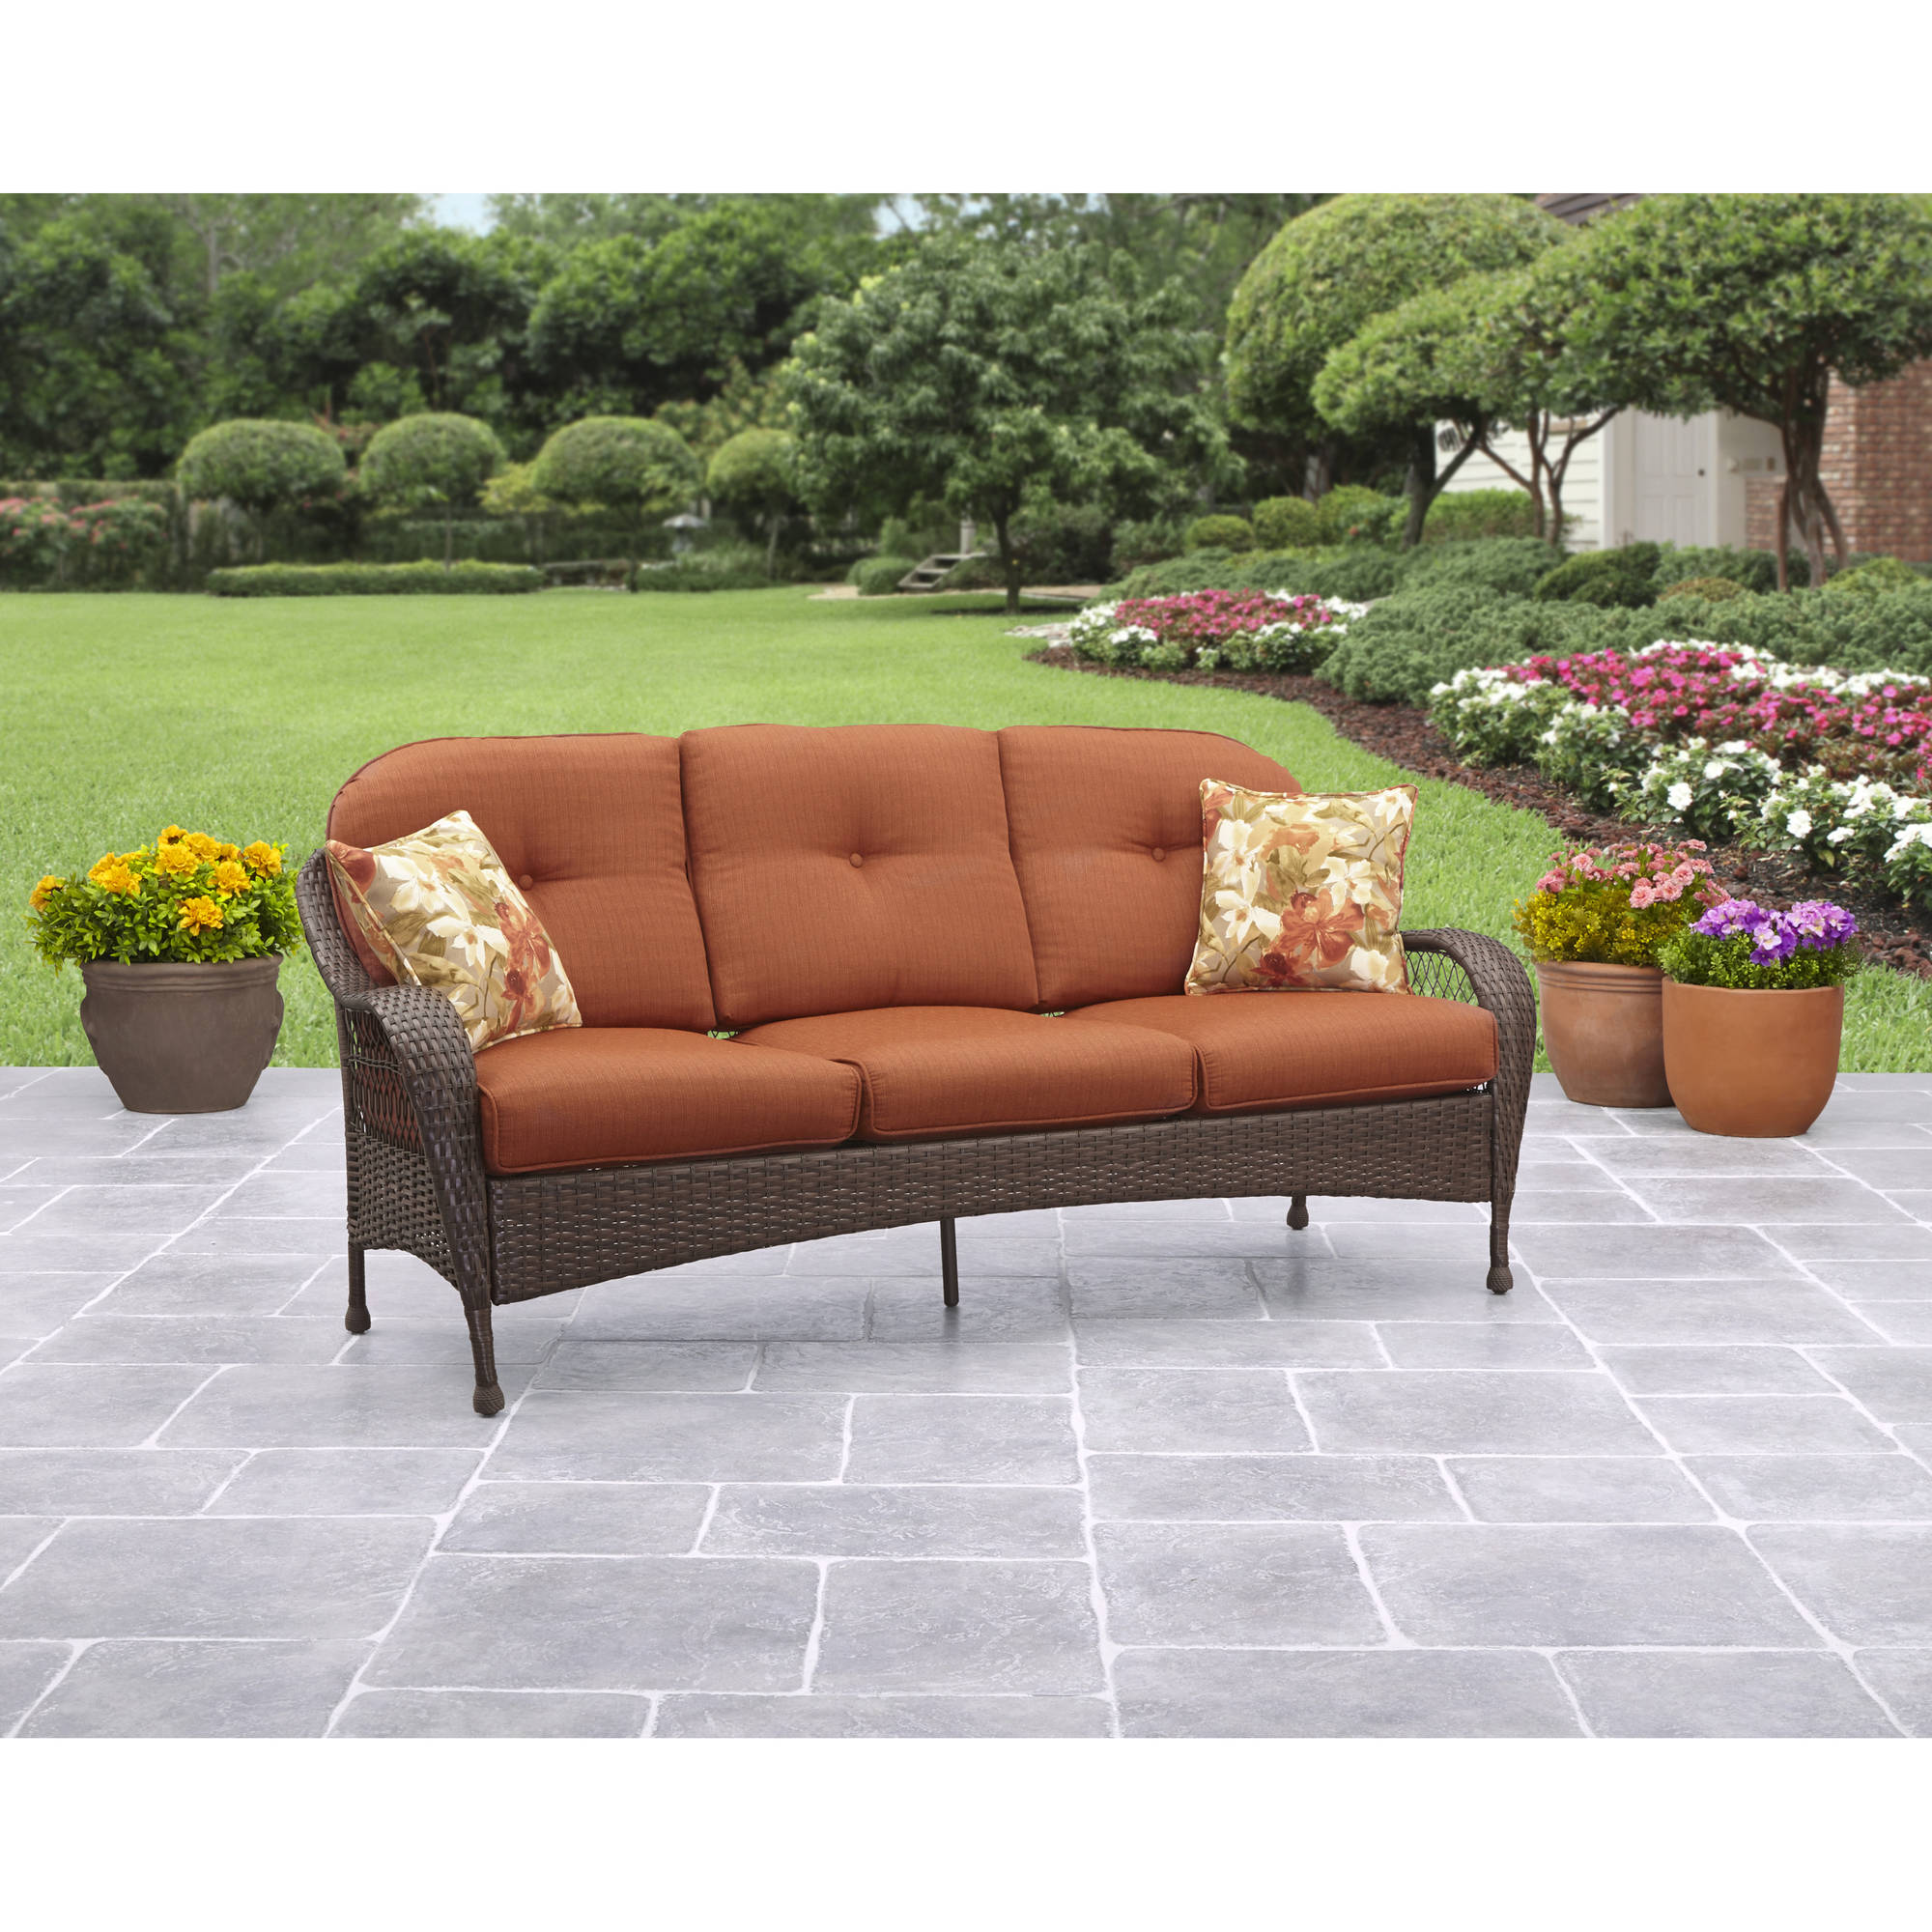 Better Homes And Gardens Davenport 7 Piece Woven Outdoor Sectional Set    Walmart.com